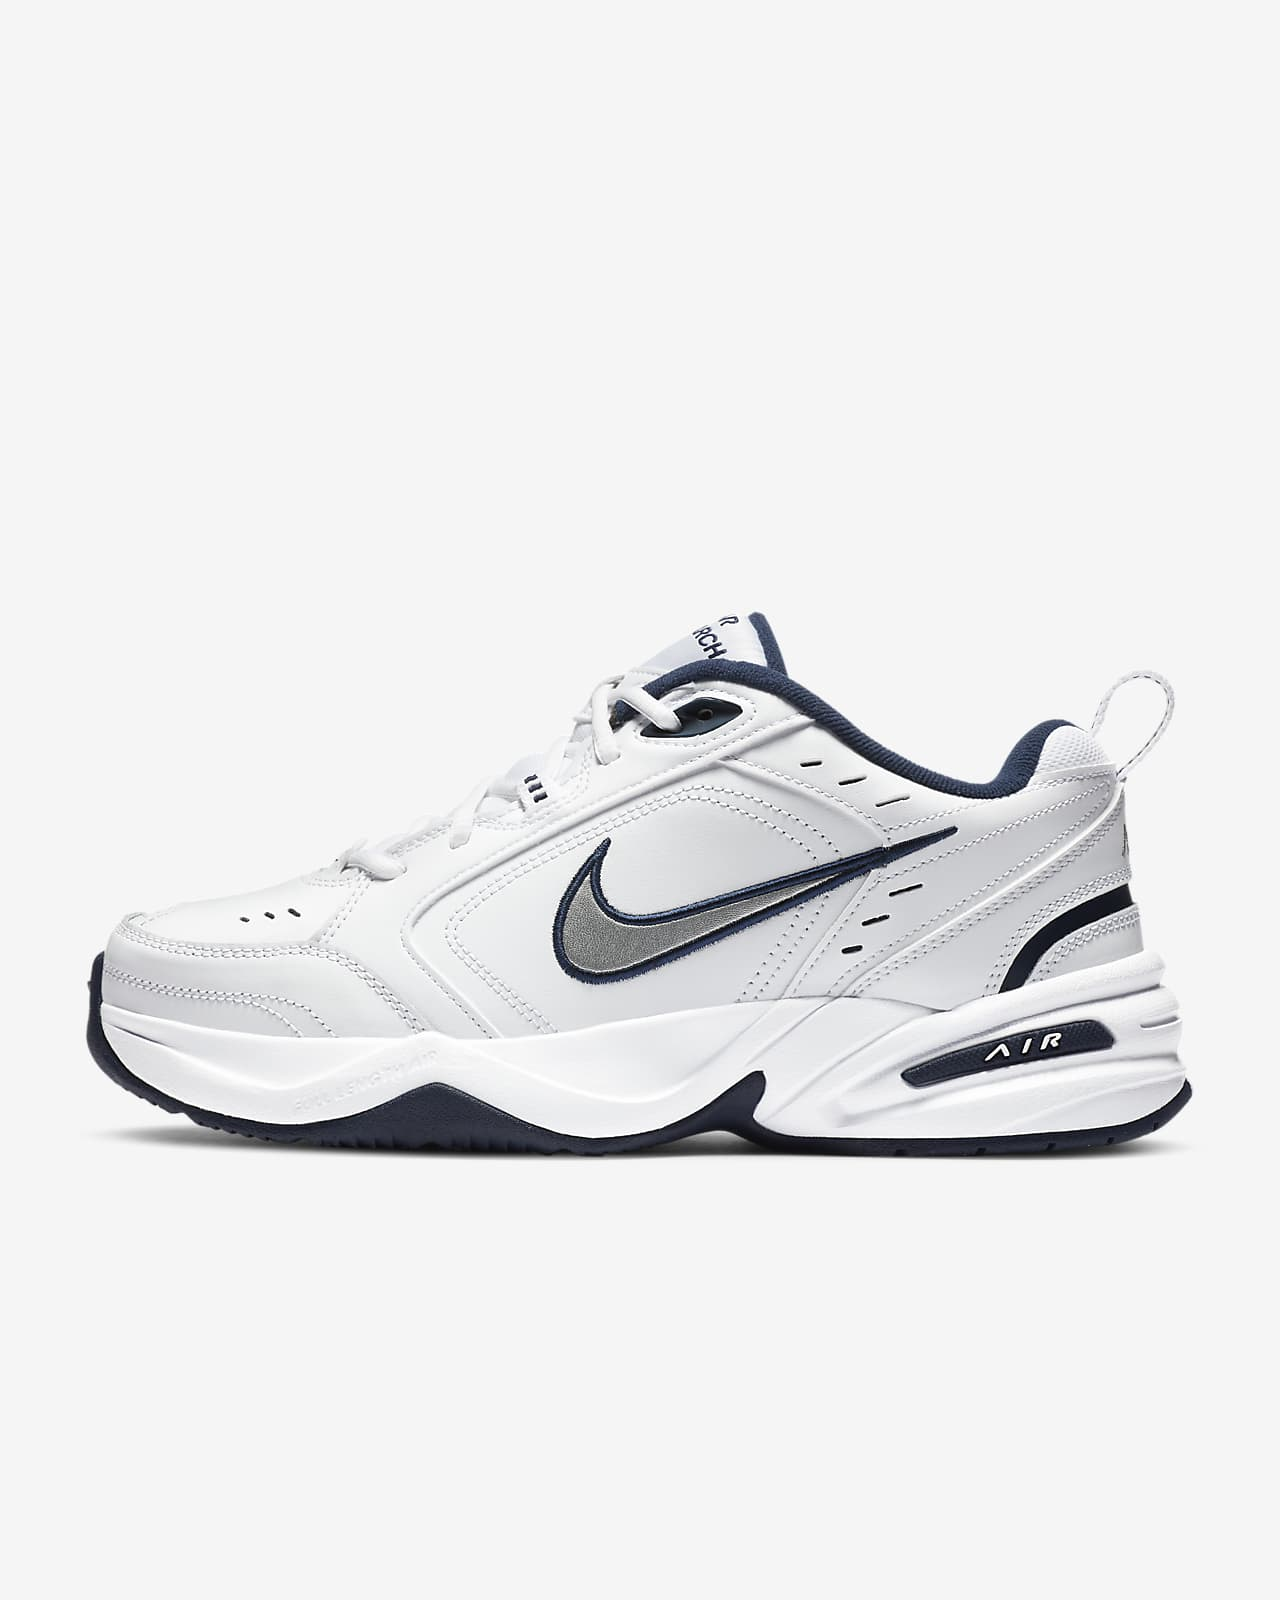 Nylon pistola crema  Nike Air Monarch IV Men's Training Shoe. Nike MY